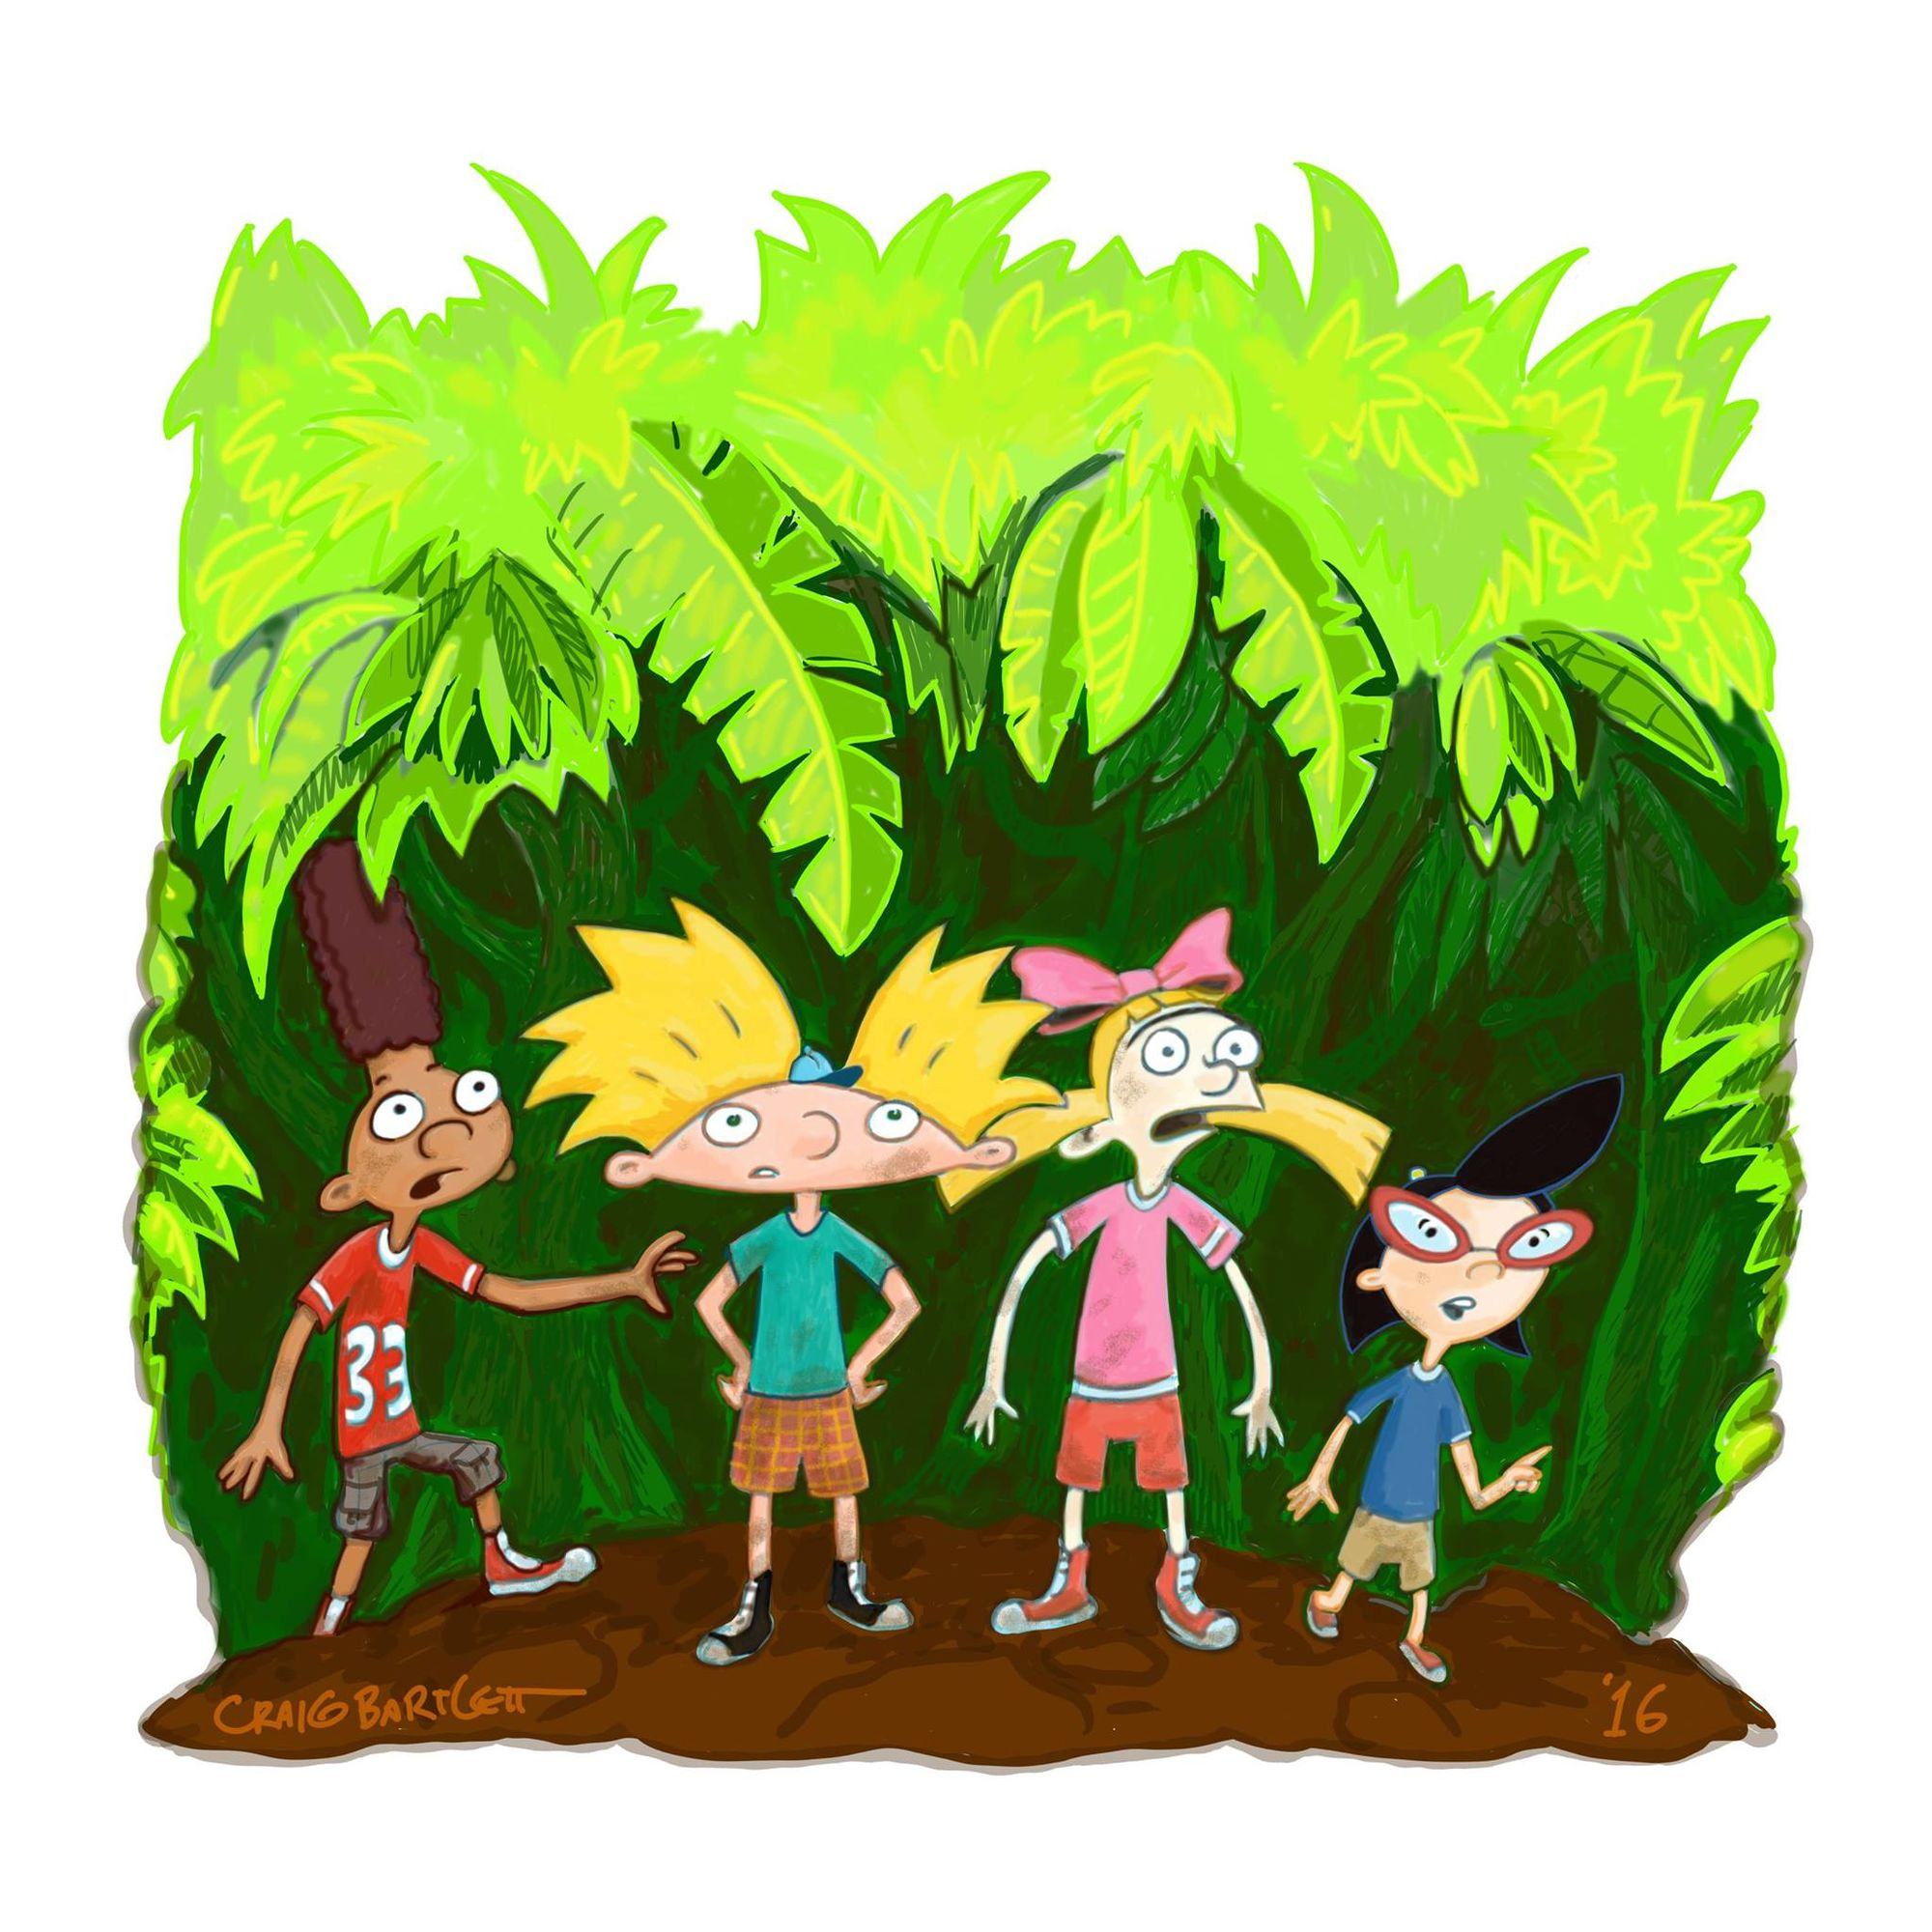 Movie hey arnold. Free cliparts download clip